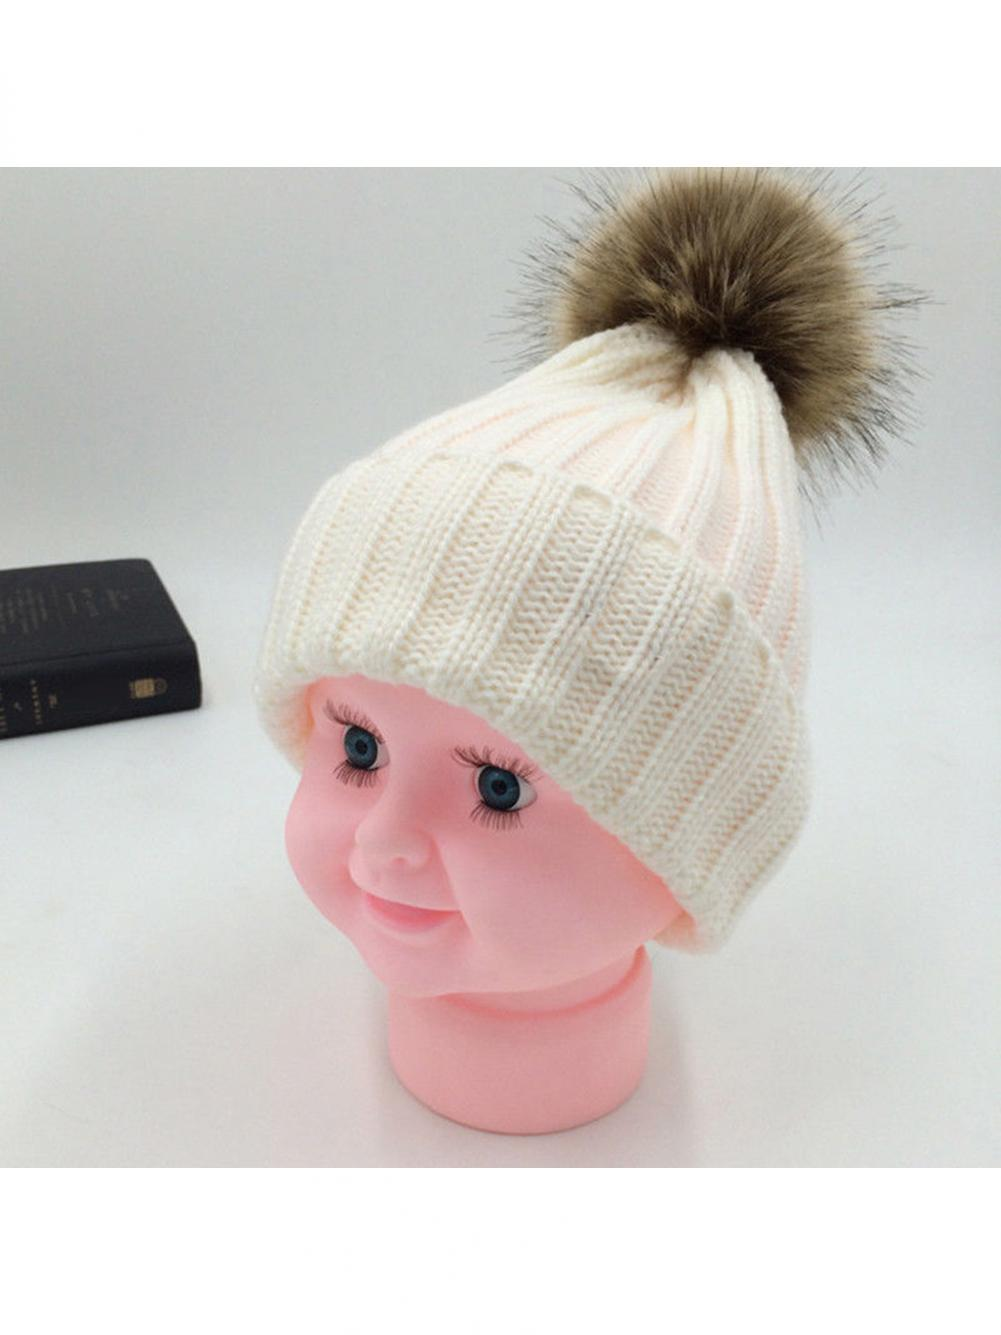 05523c0555dfc Girl12Queen - Fashion Cute Fluffy Ball Baby Kids Adult Beanie Hat Winter  Warm Knitted Cap Gift - Walmart.com